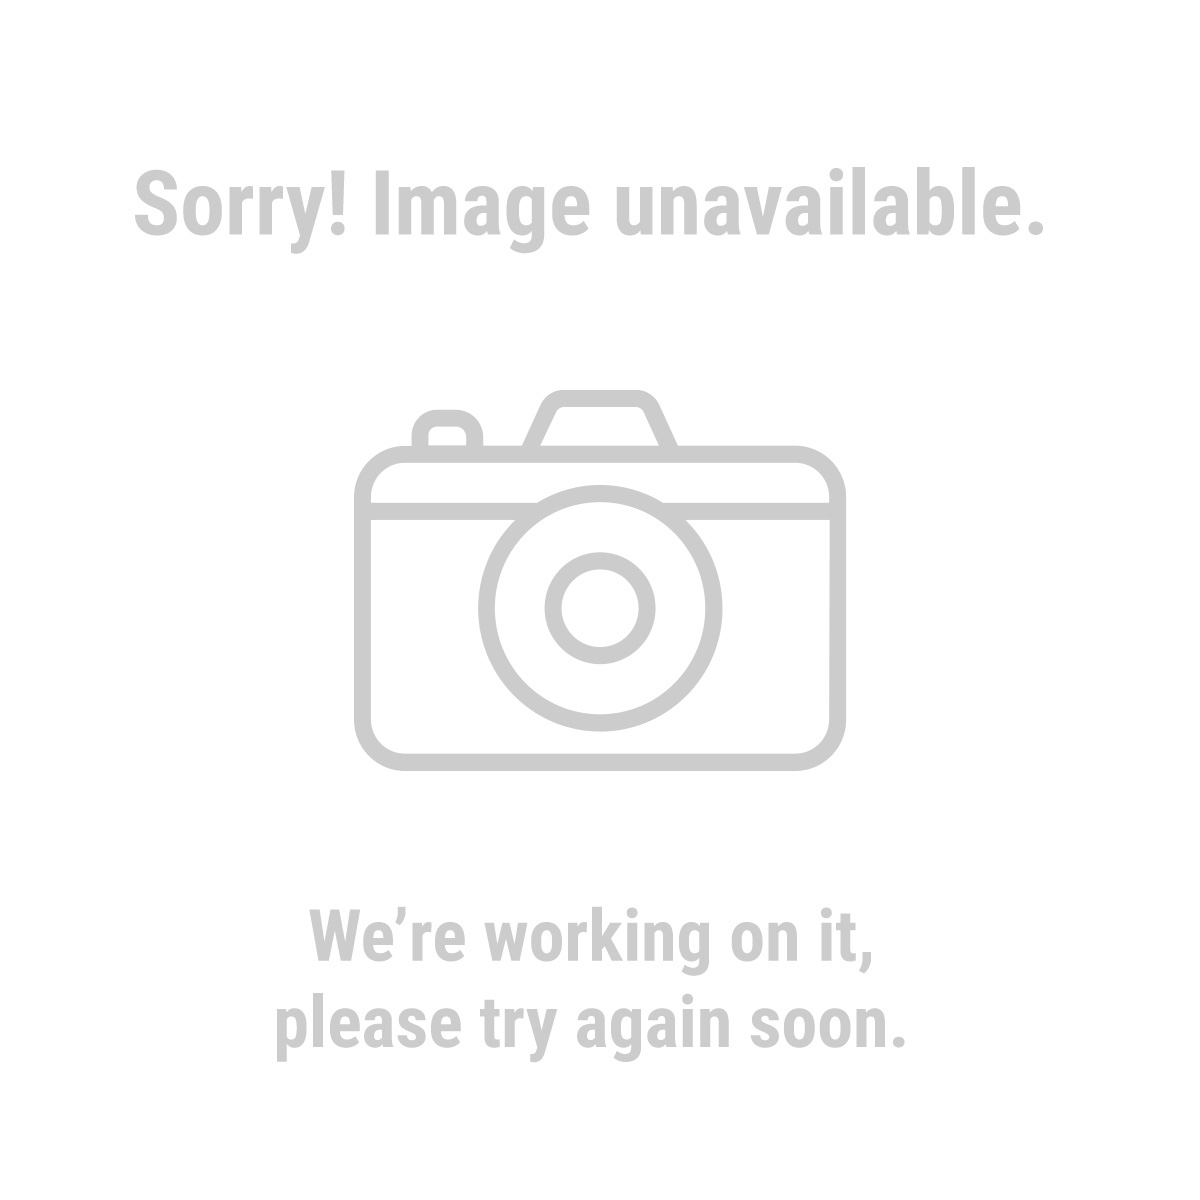 HARDY 99691 Cold Resistant PVC Gloves in Orange, Large